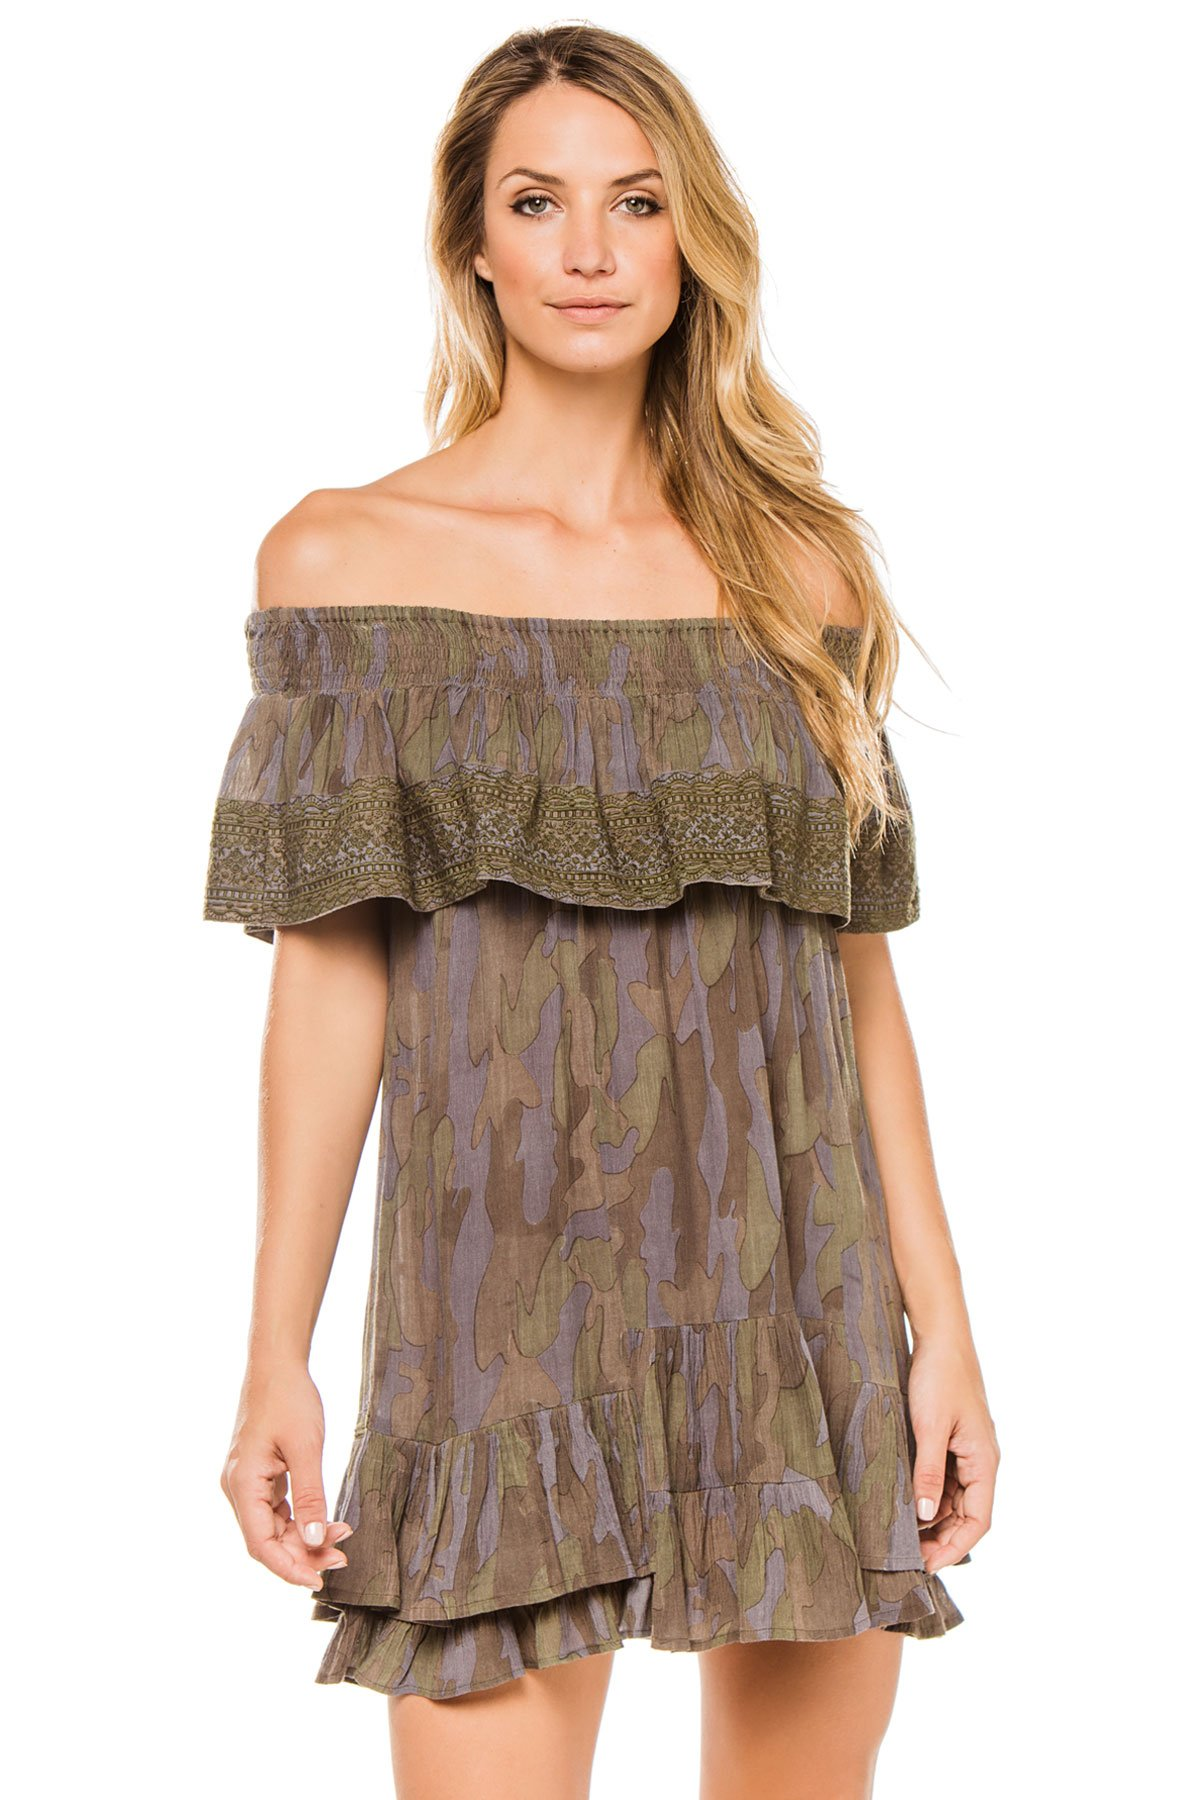 Muche et Muchette Women's Wovens Dress Swim Cover Up Camo One